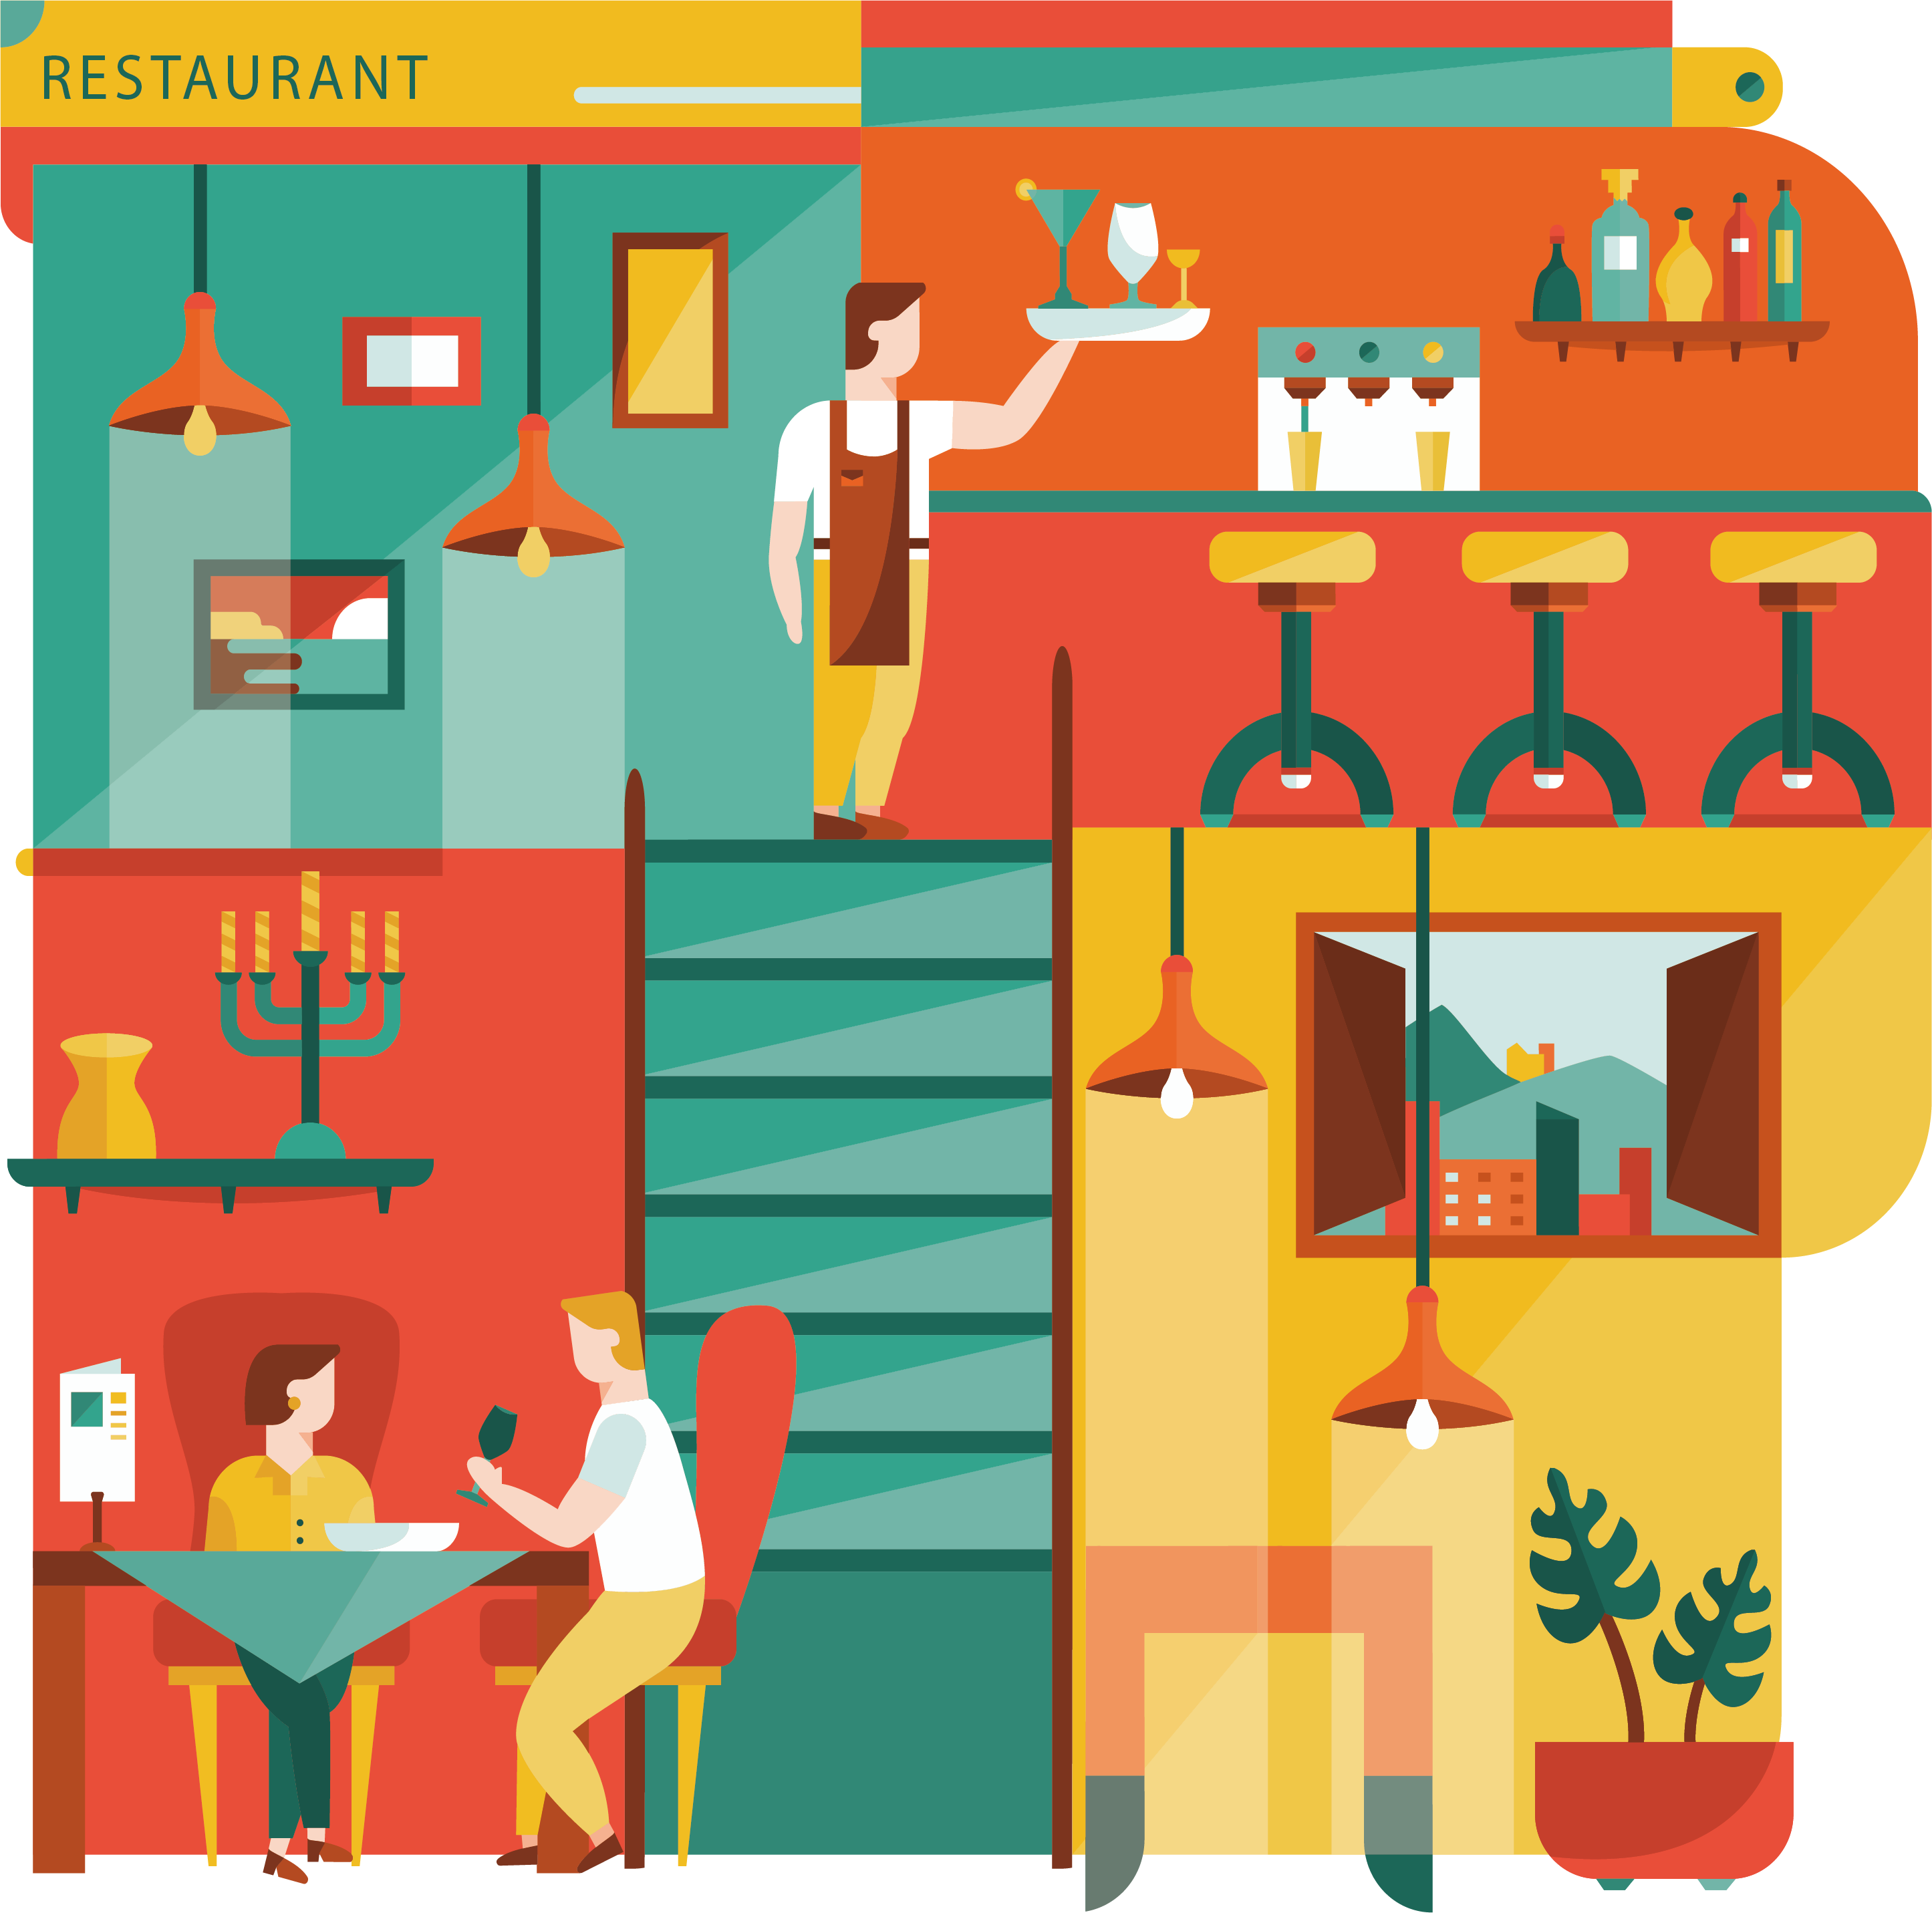 Flat design illustration model. Restaurants clipart retro restaurant